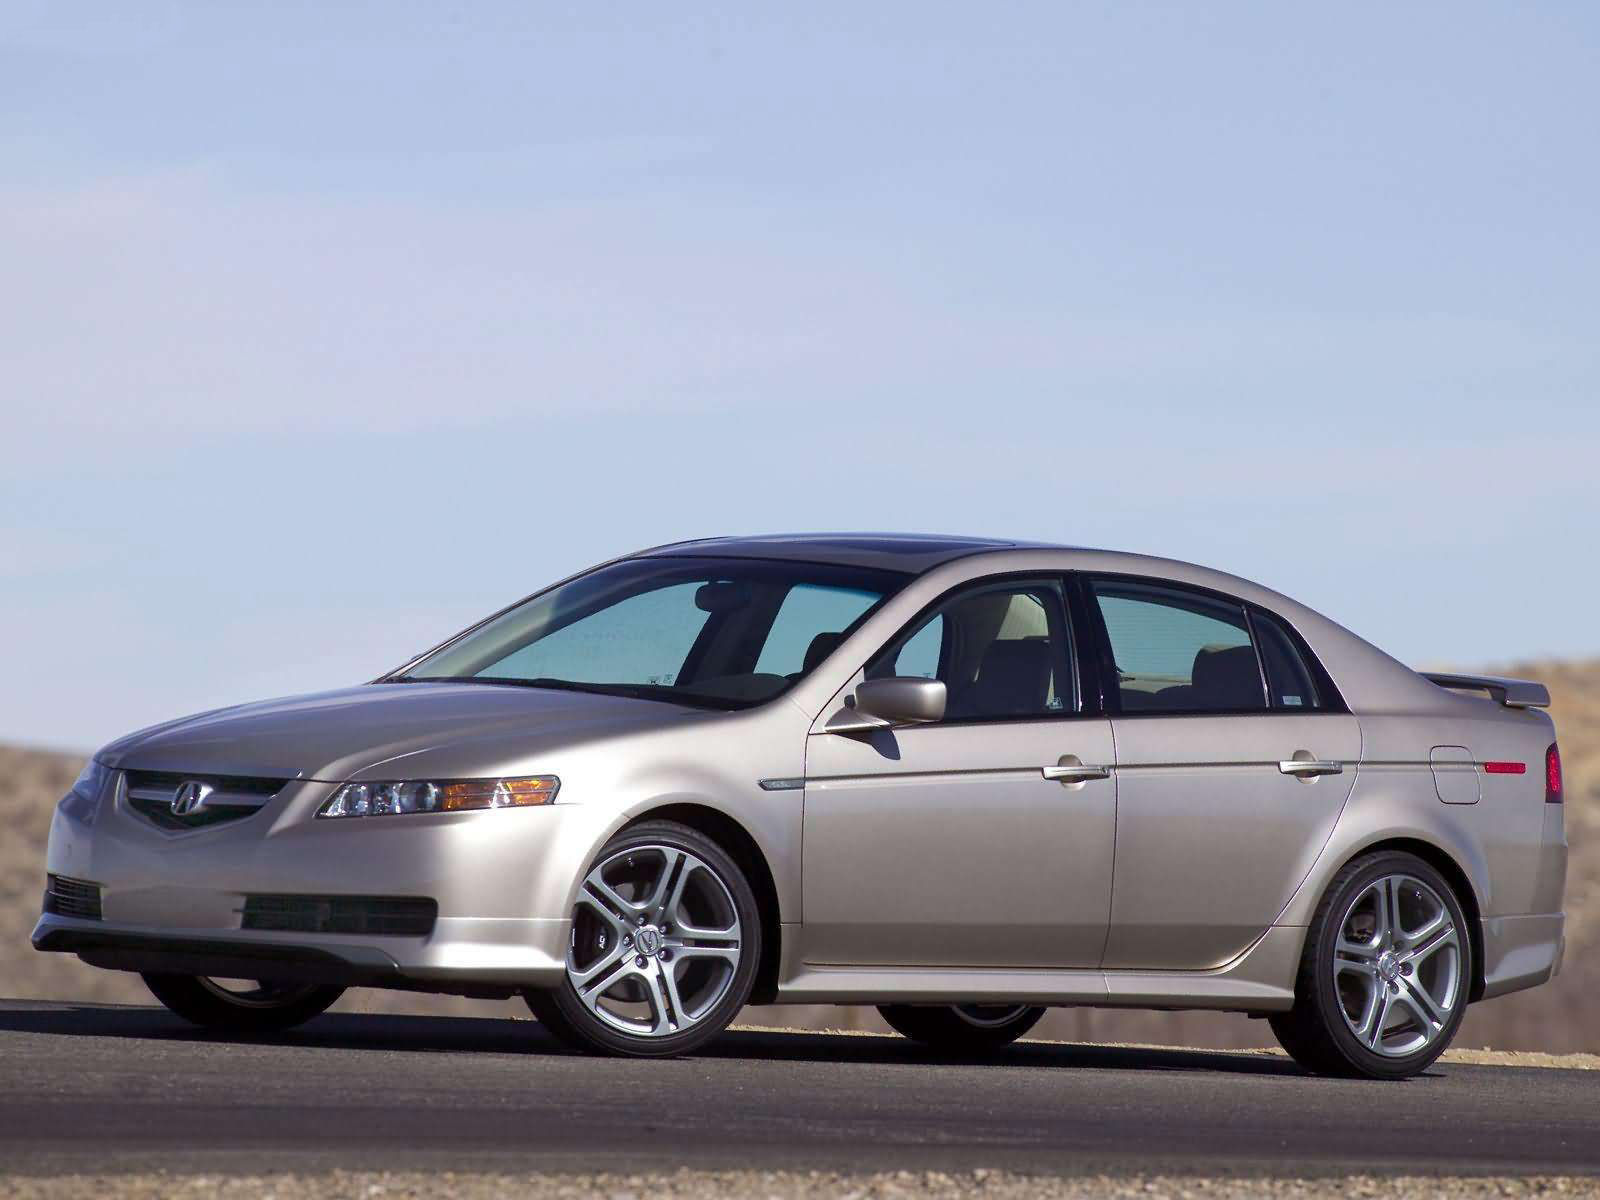 2005 Acura RL with ASPEC Performance Package photo - 7